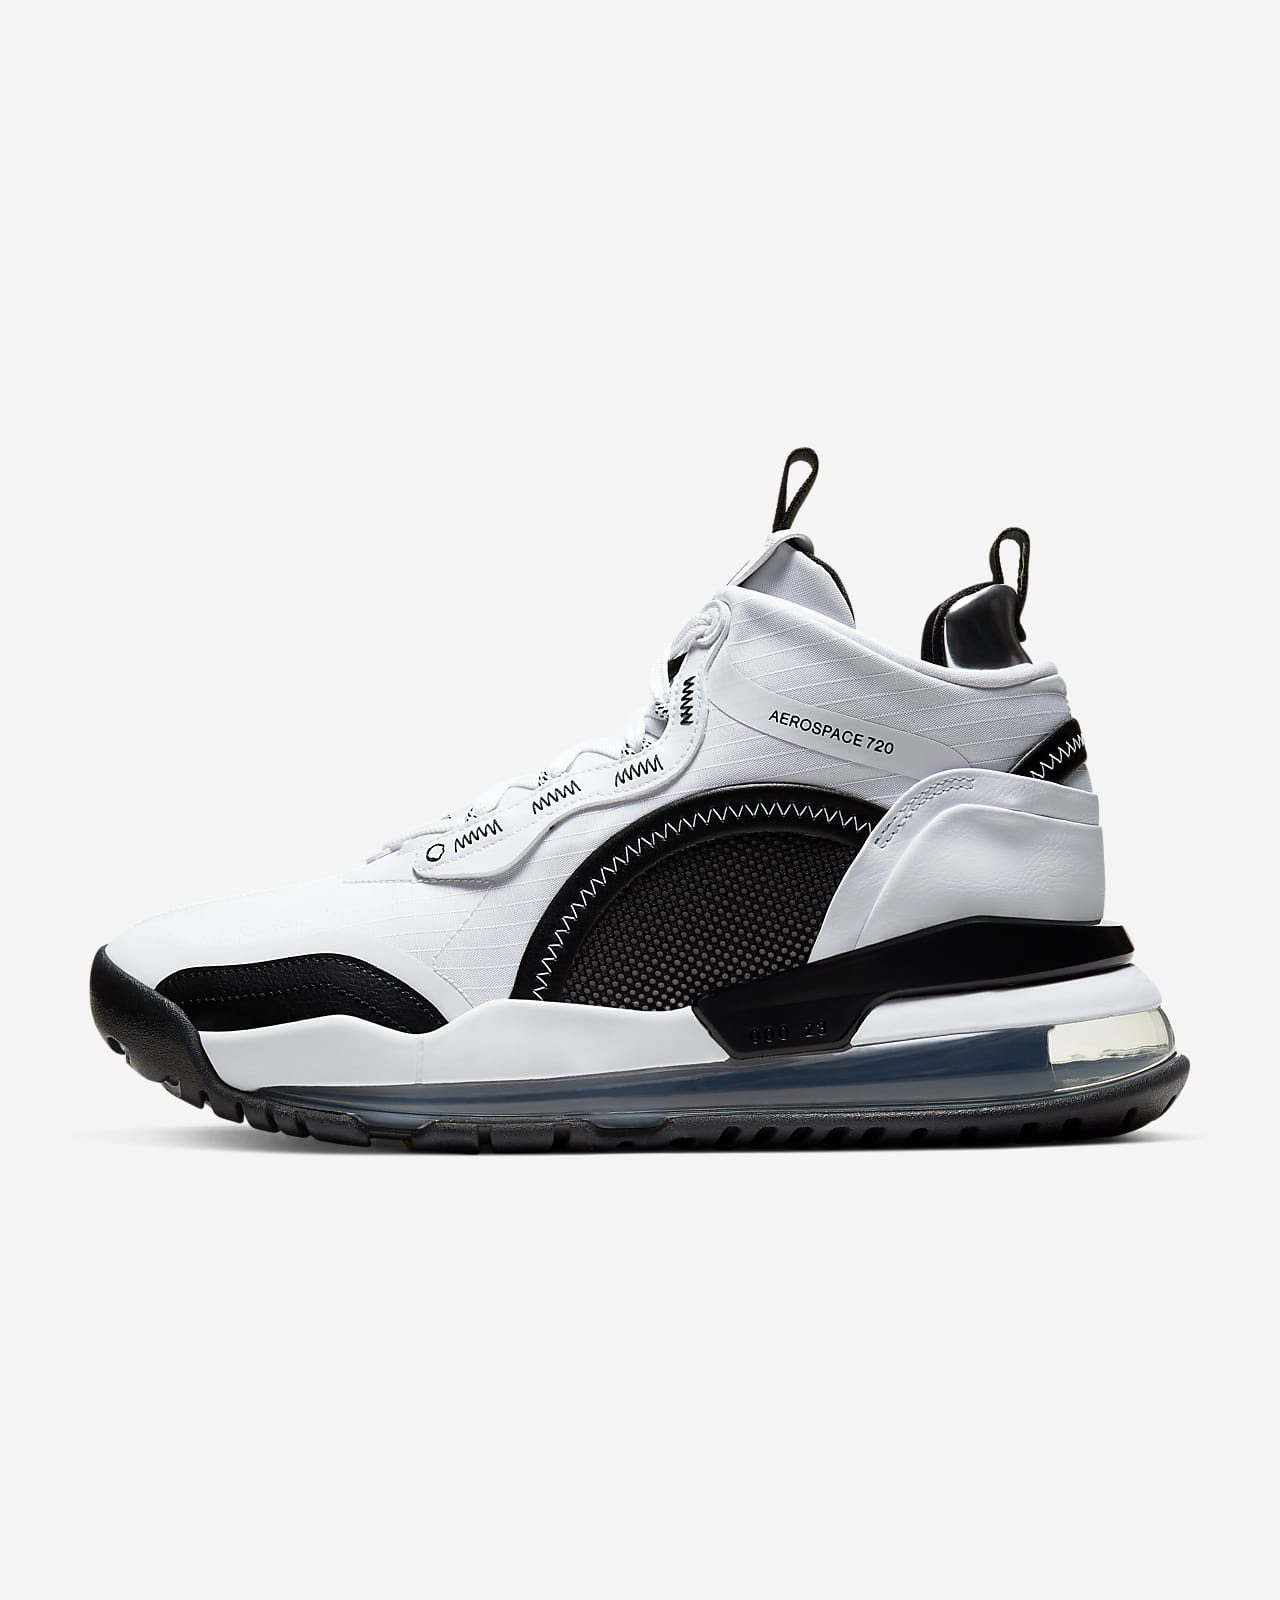 Jordan Aerospace 720 Men's Shoe